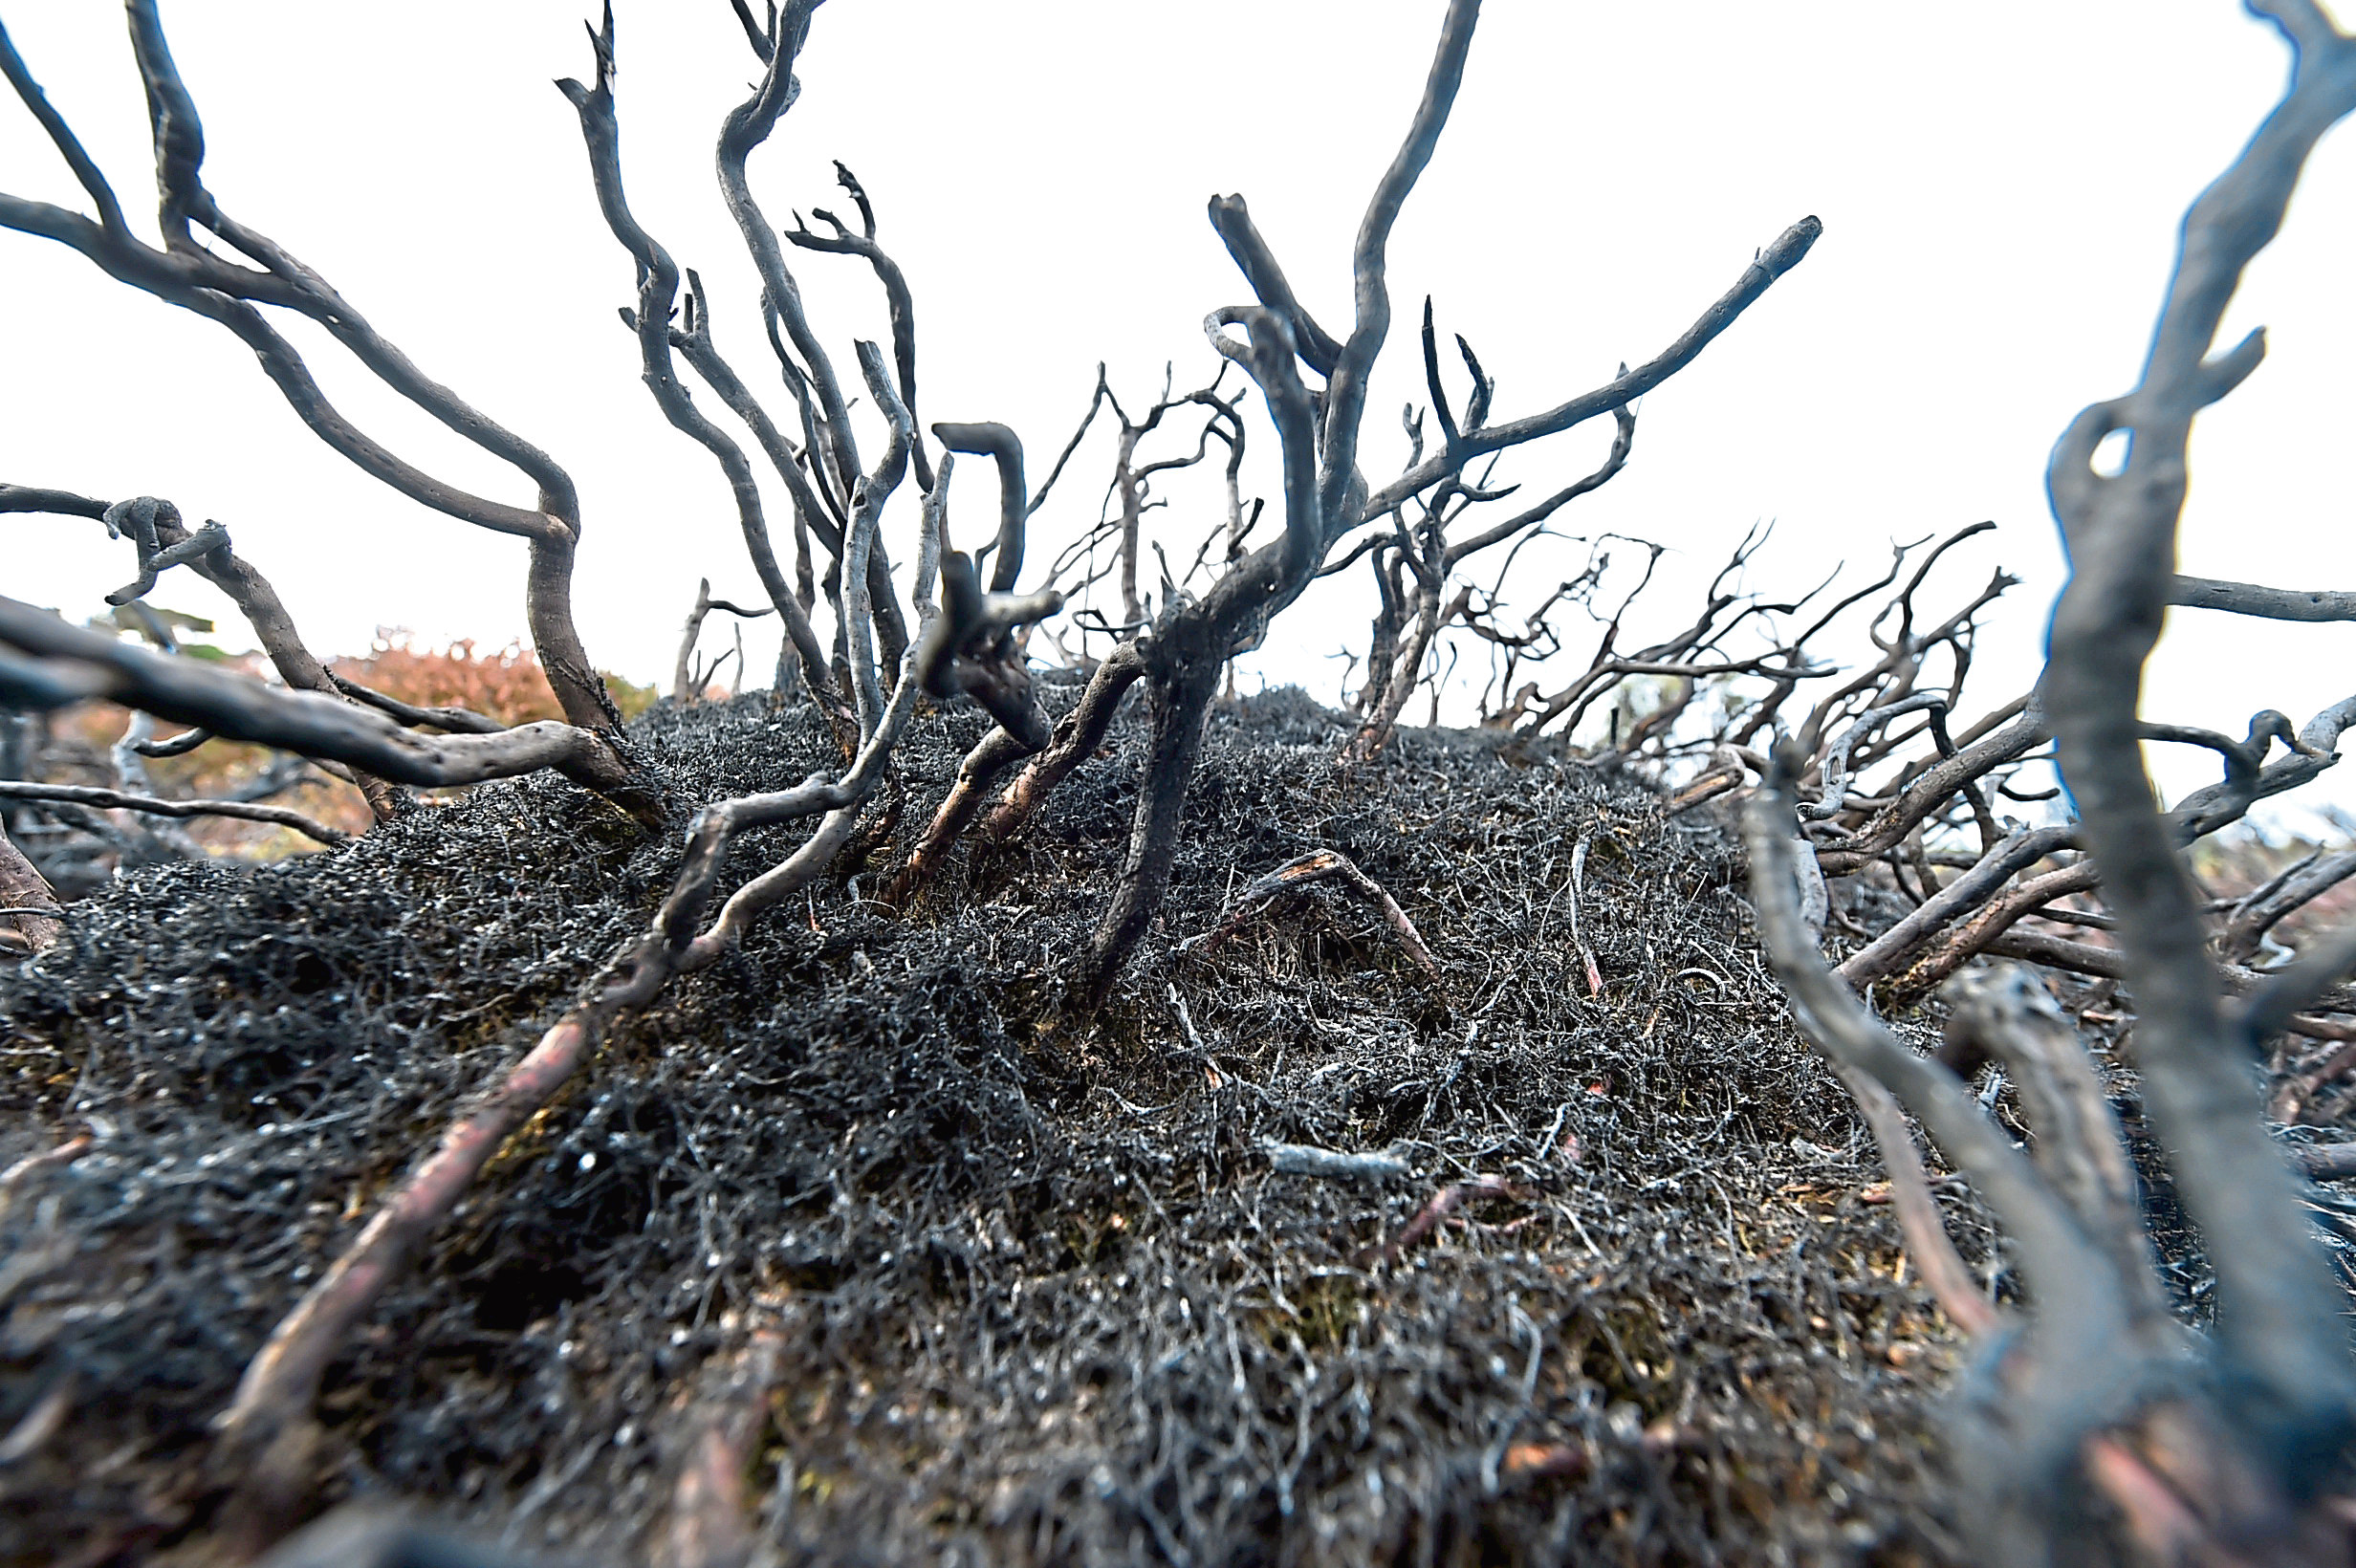 The fires at the Gramps have caused widespread damage to vegetation